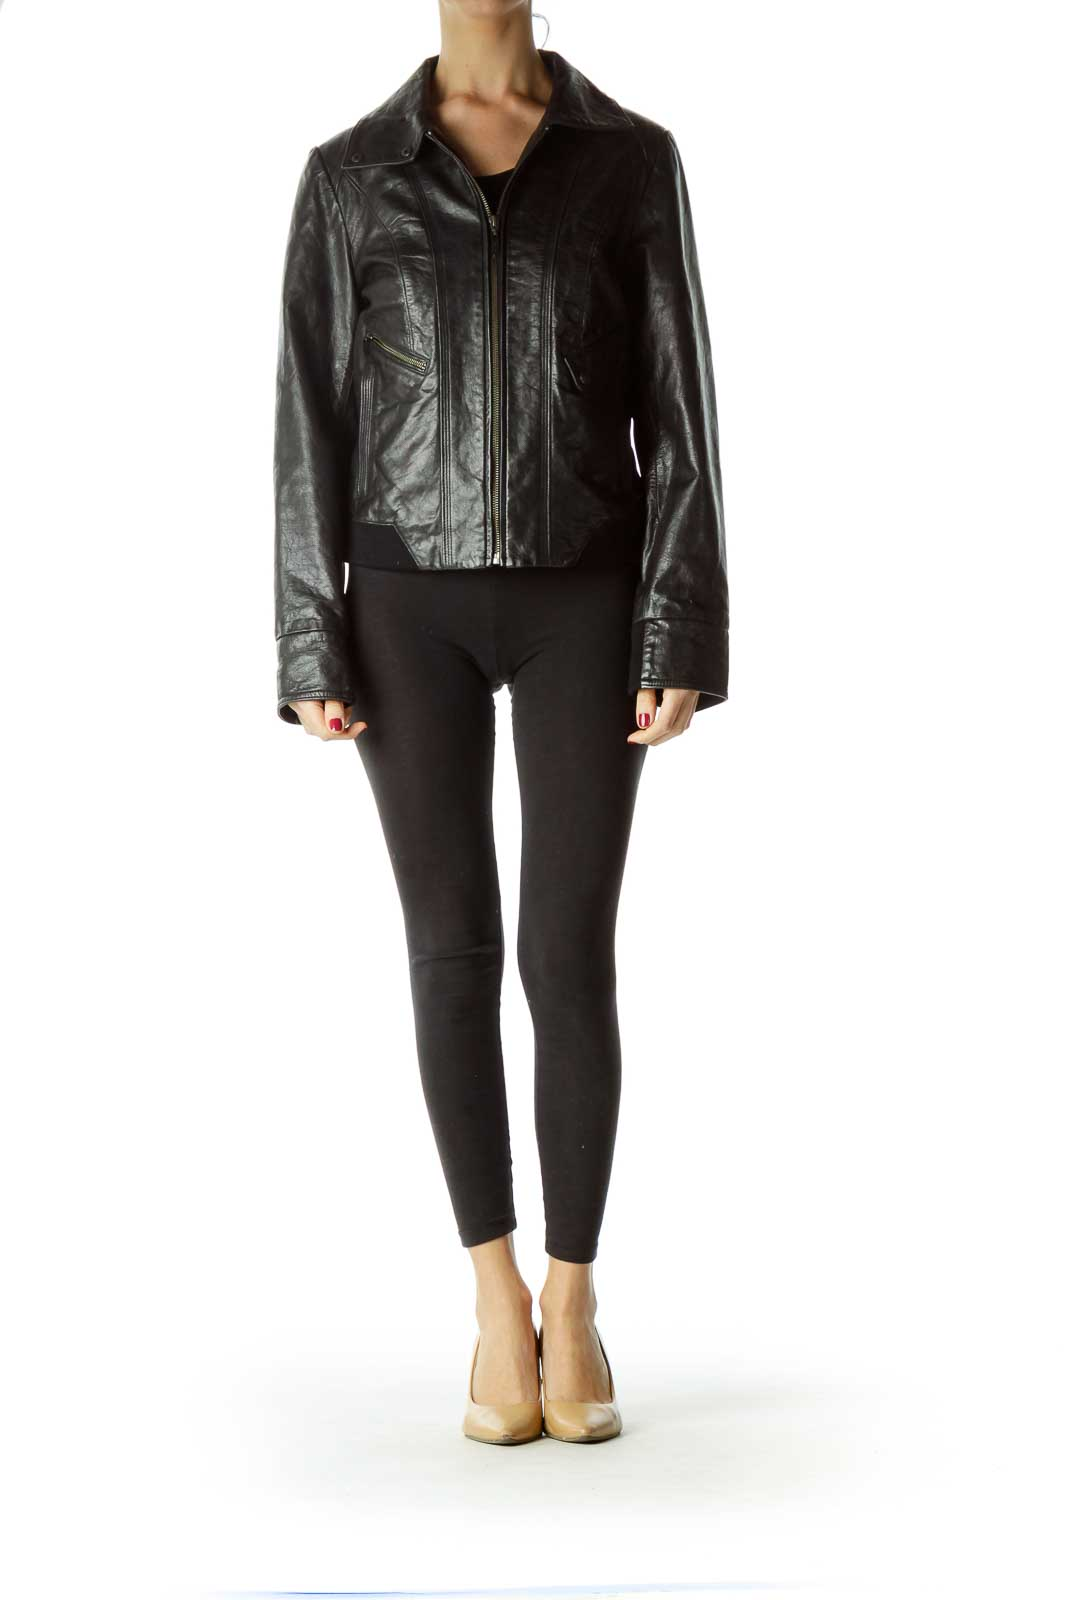 Black Zippered Leather Jacket with Pockets